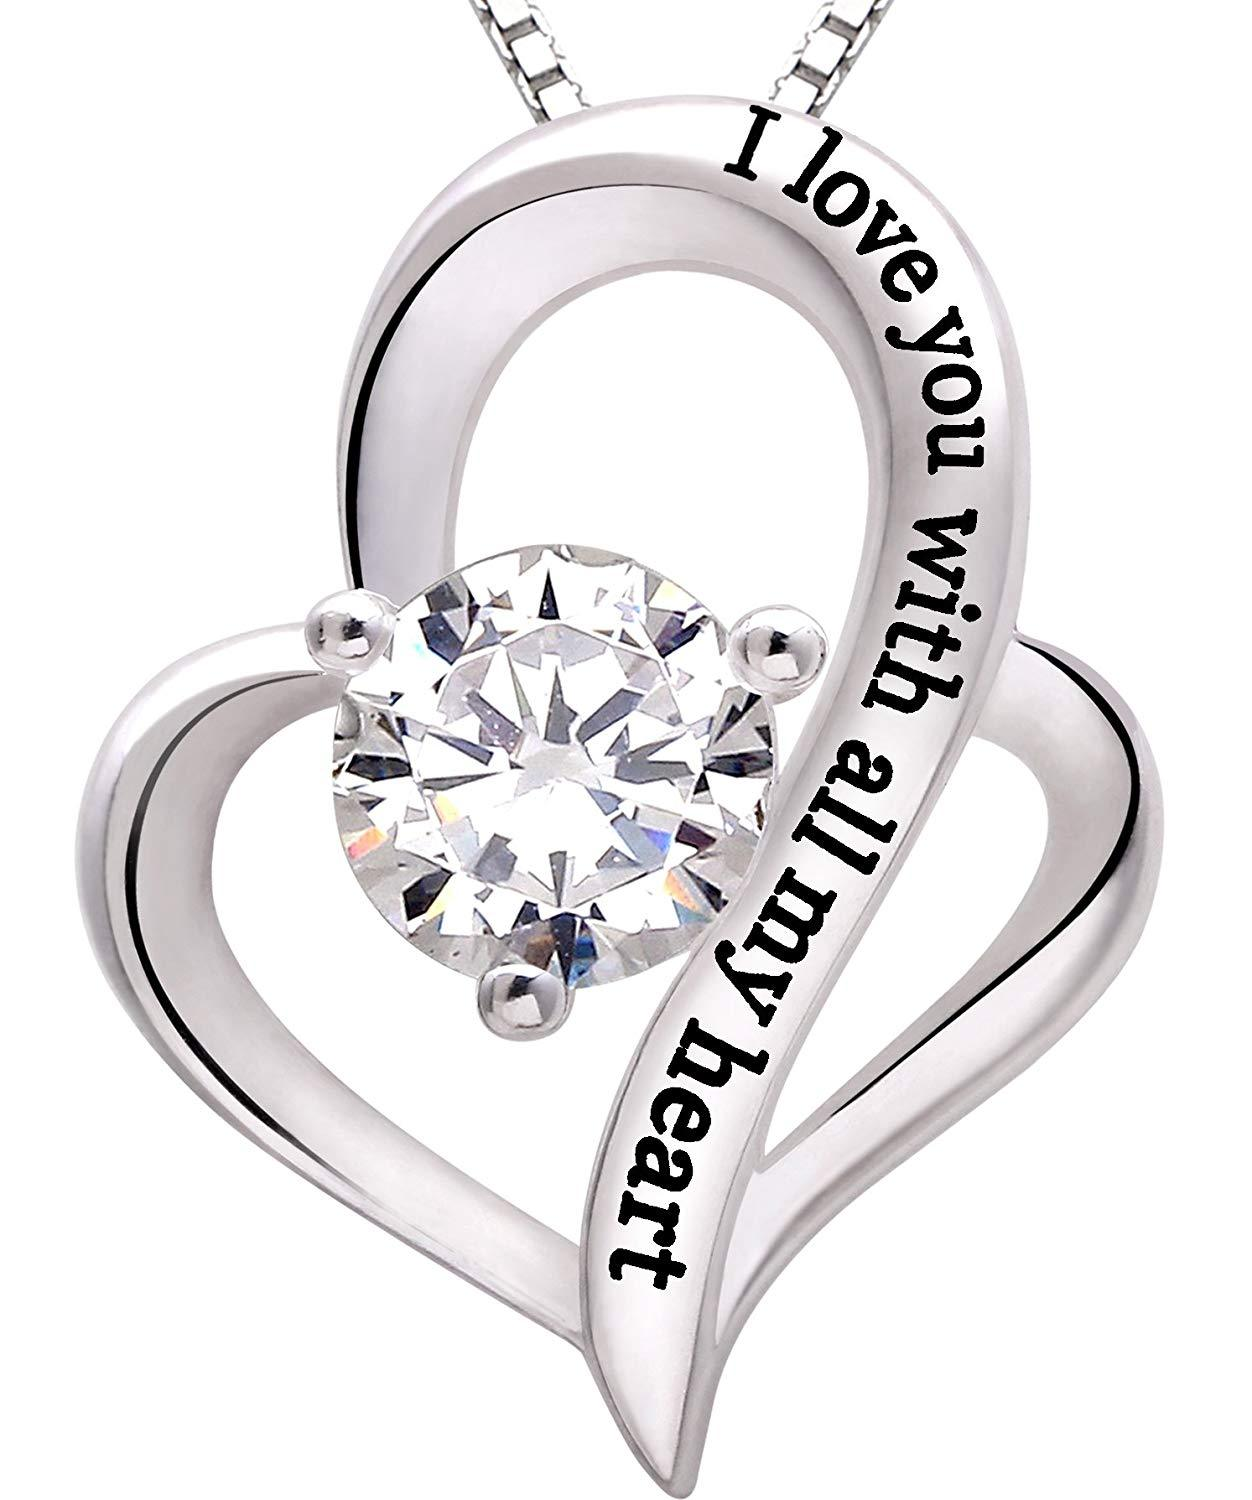 I Love you with all my heart Heart Necklace in 18K White Gold Plated